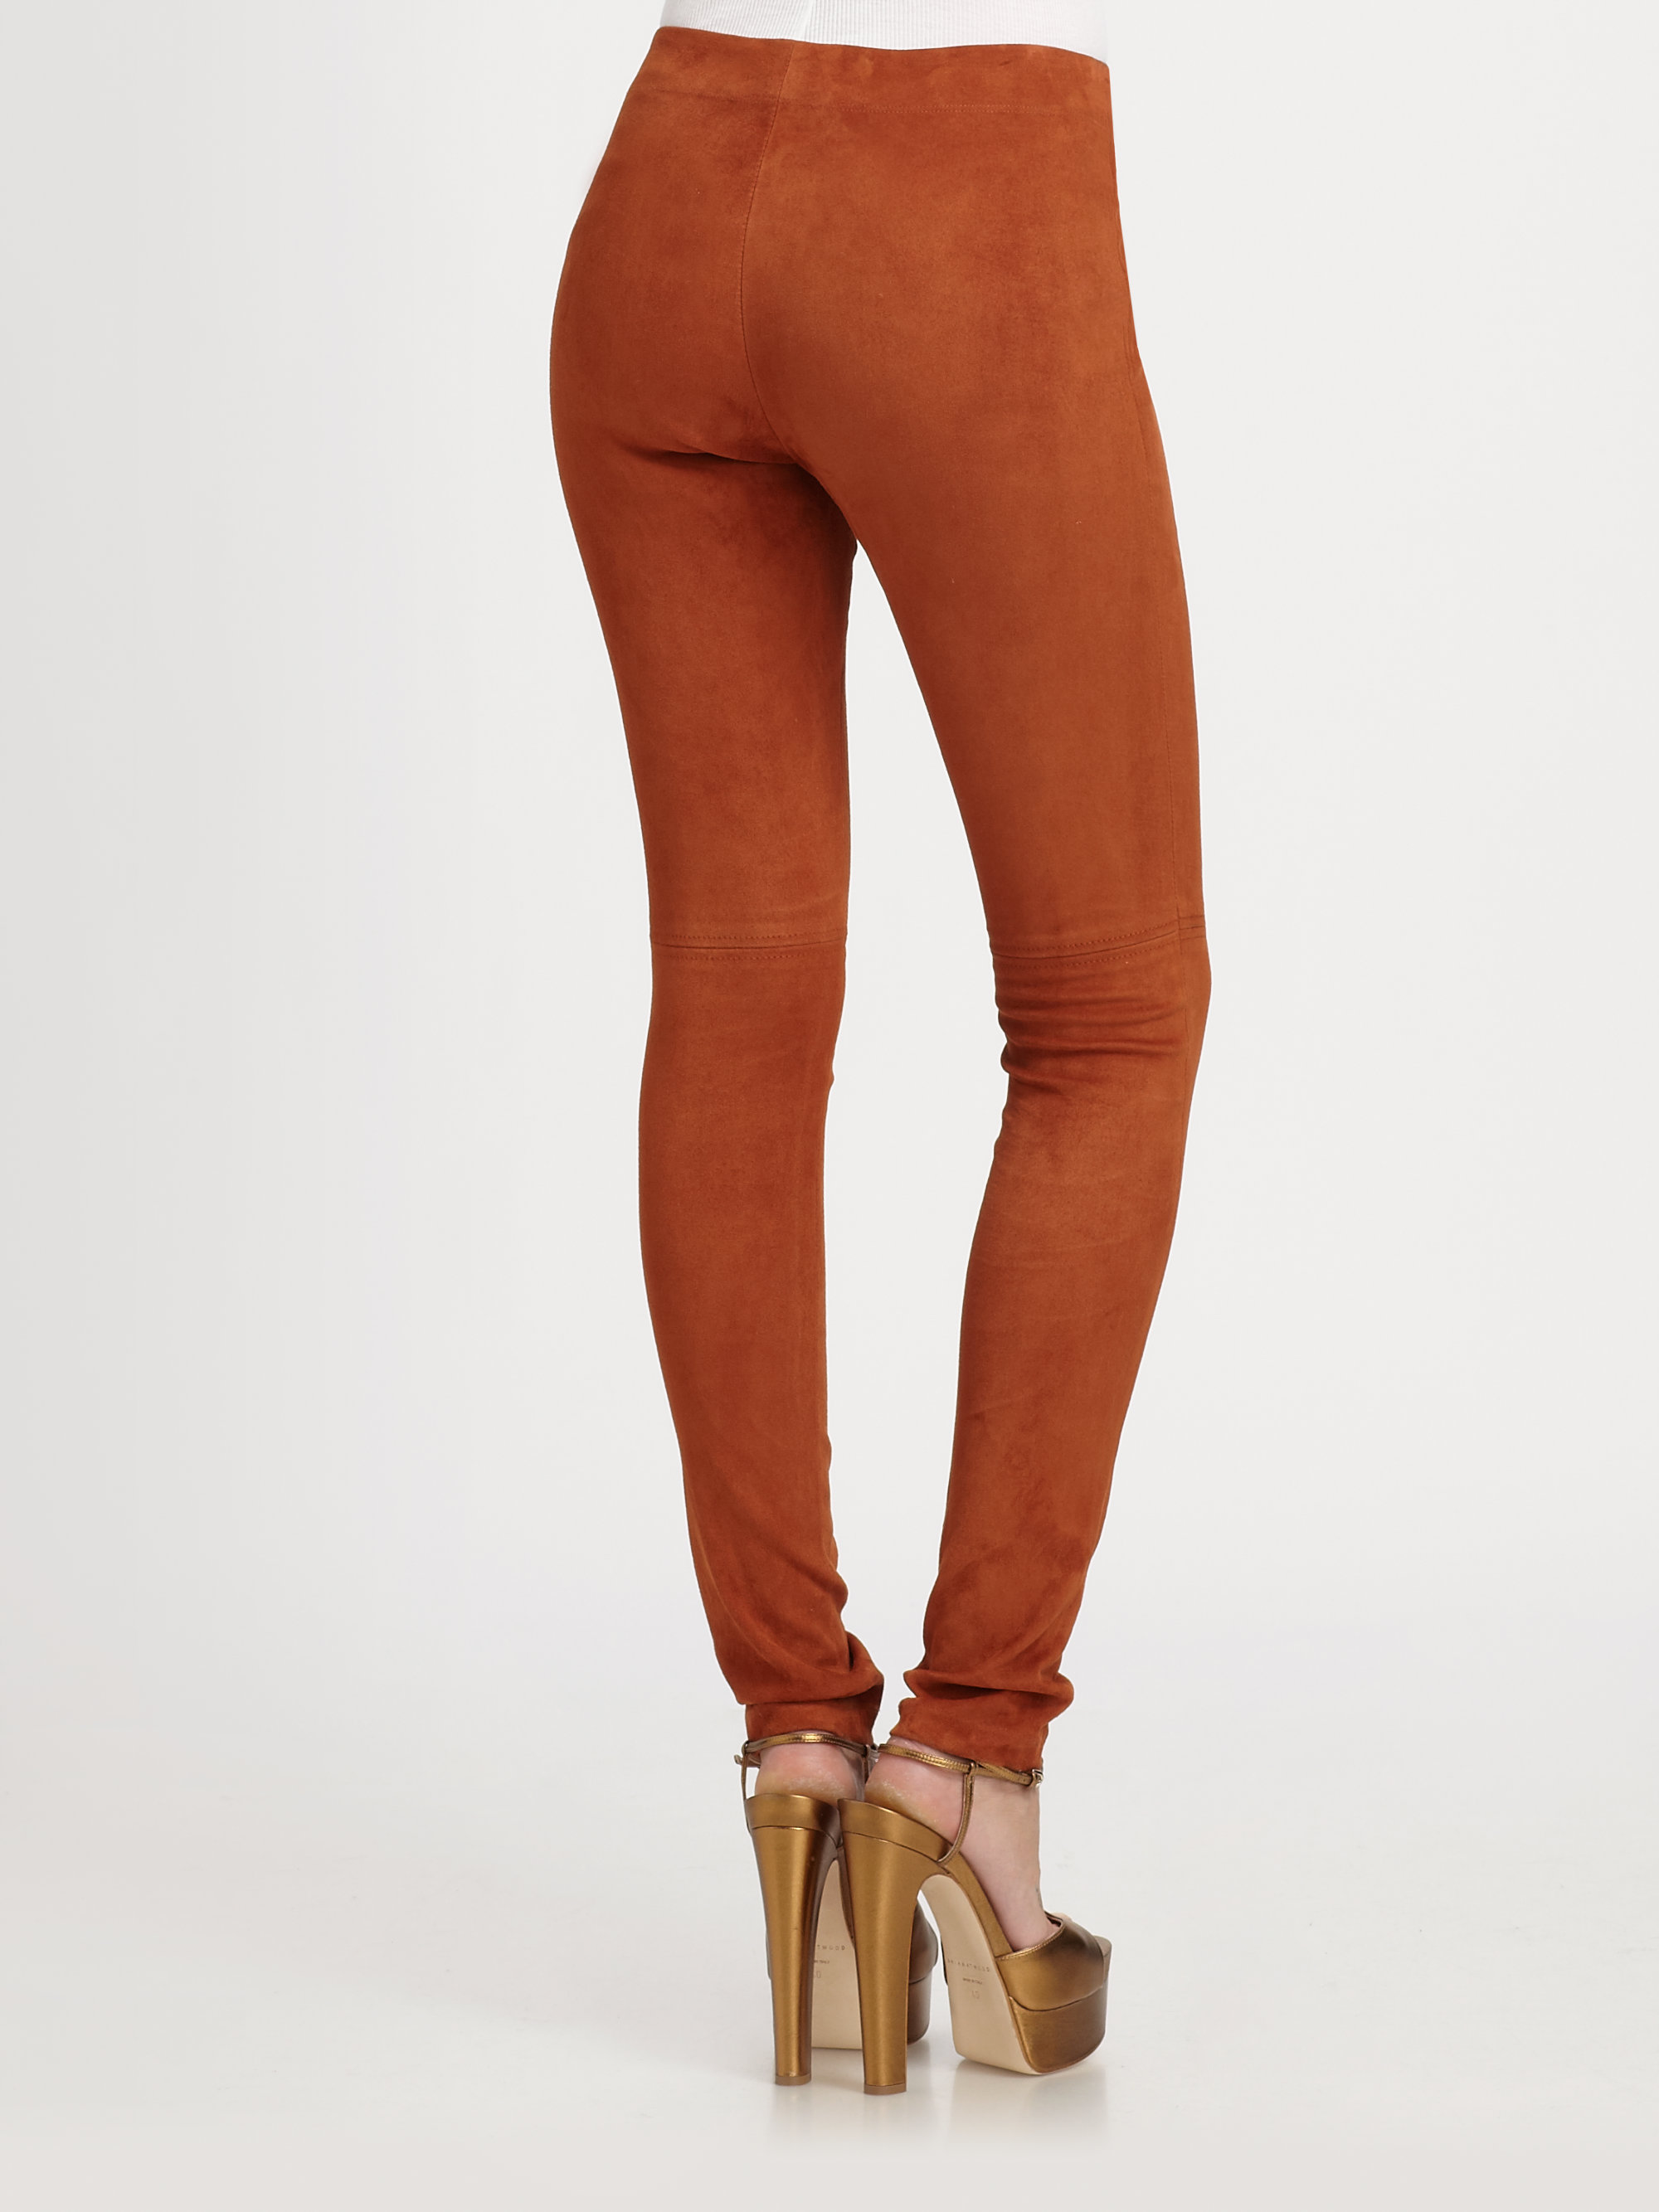 Burnt Orange Leggings